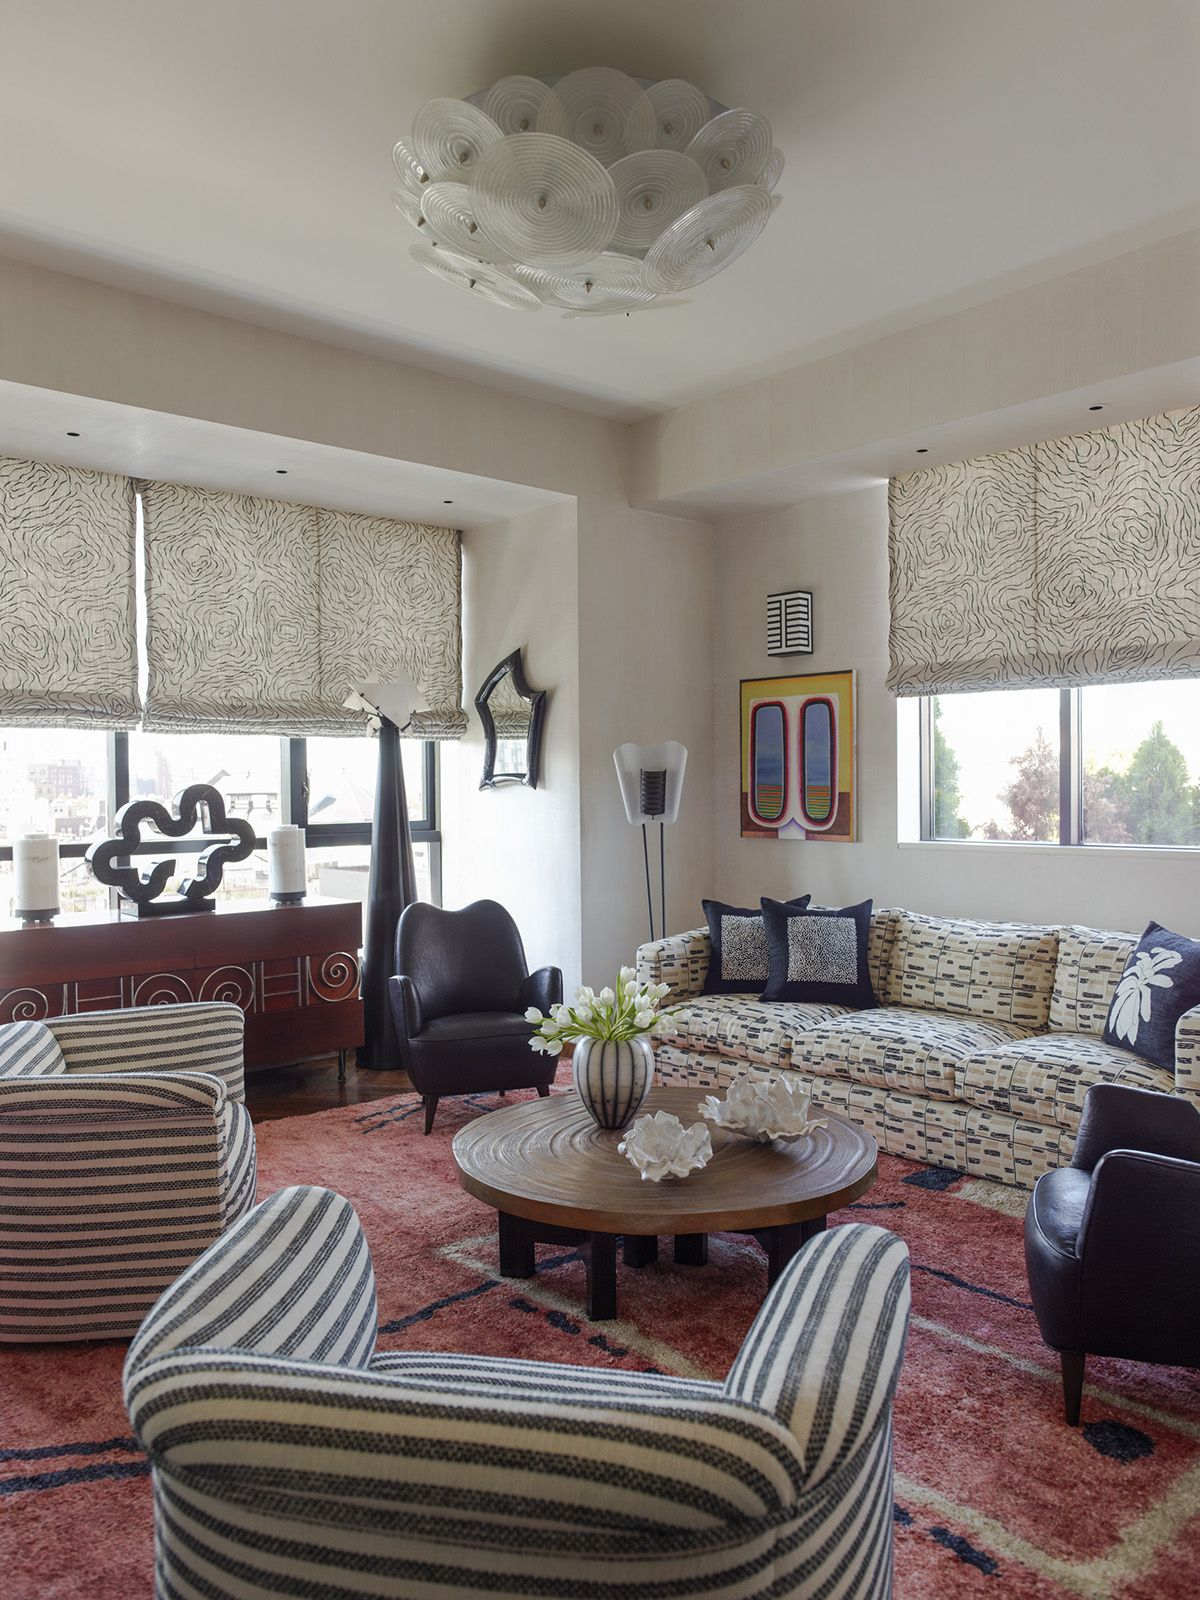 Mixed Texture And Pattern Kelly Wearstler Interiors Living Room Blodgett Residence New York